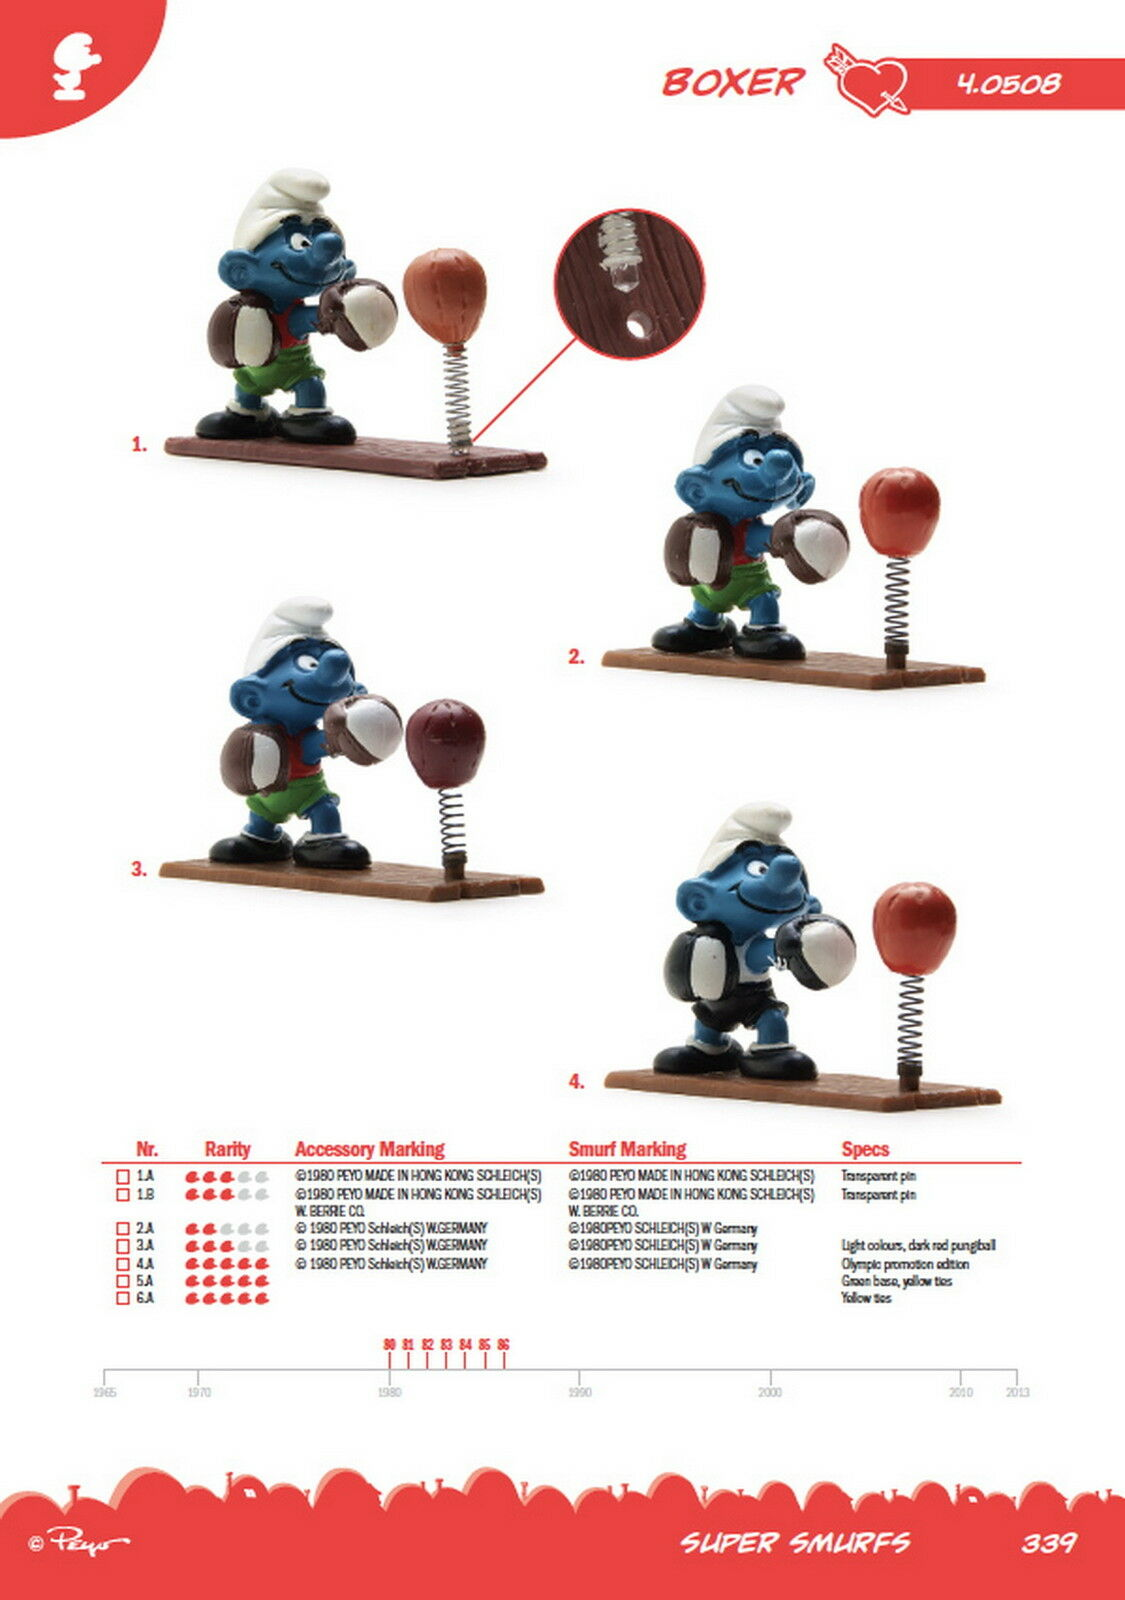 THE SMURFS OFFICIAL COLLECTOR/'S GUIDE 2013 CATALOGUE SMURF NEW